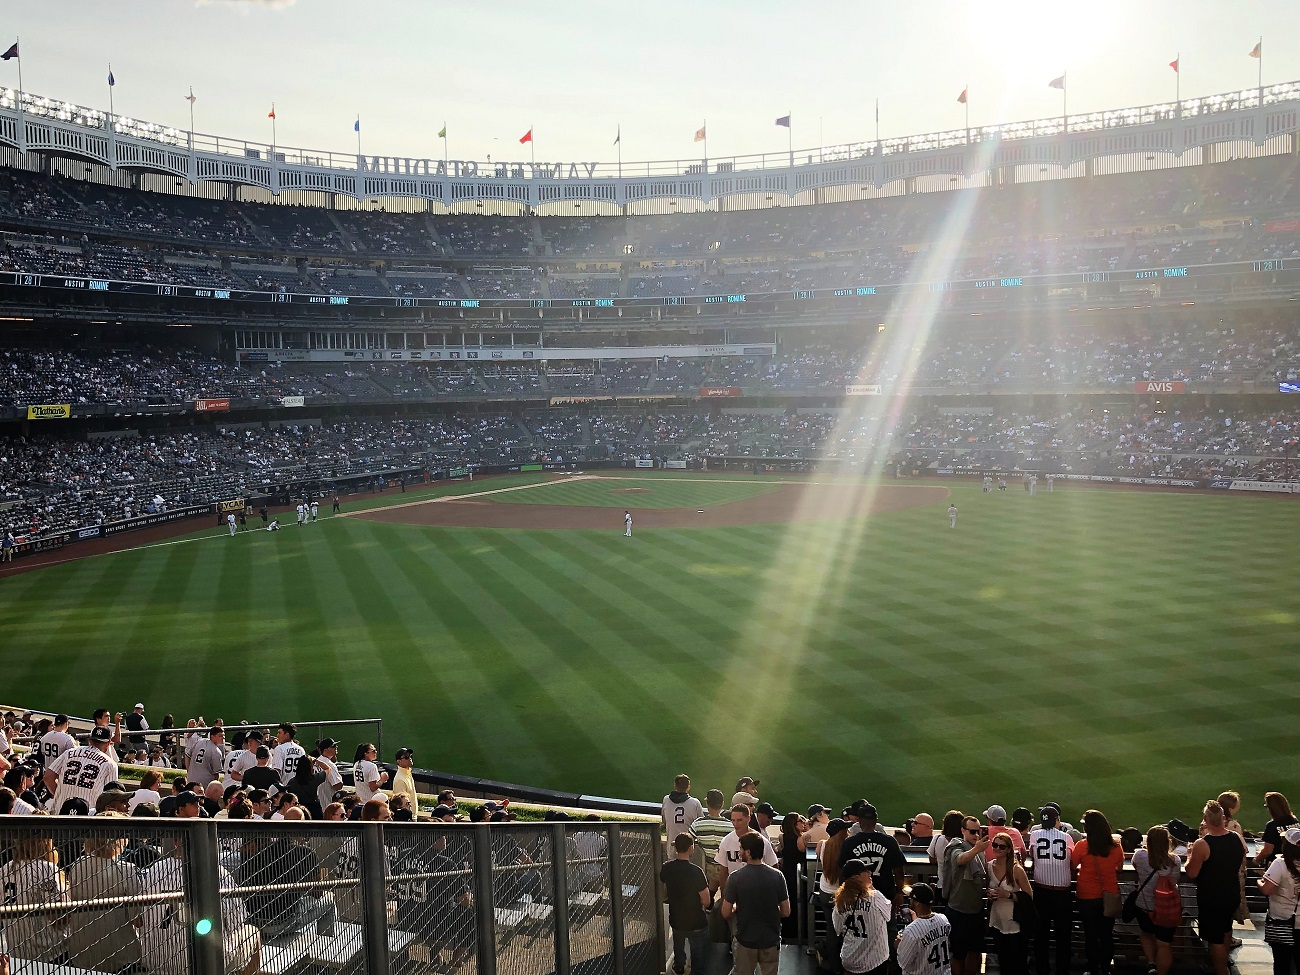 Right FIeld View of the Bleachers at Yankee Stadium